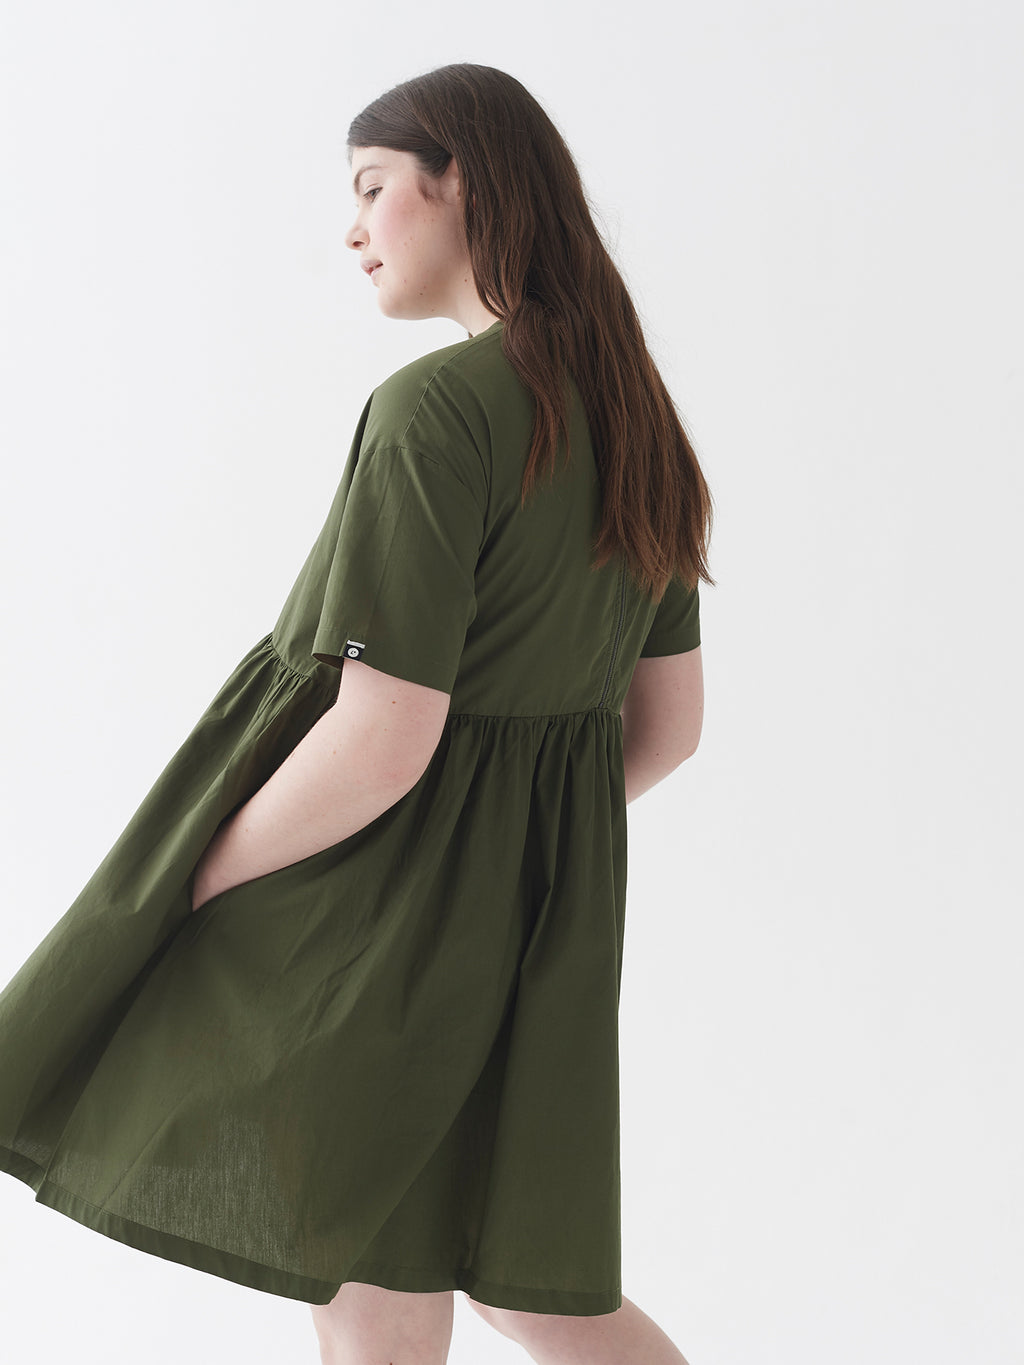 LO Woven Sally Dress - Khaki